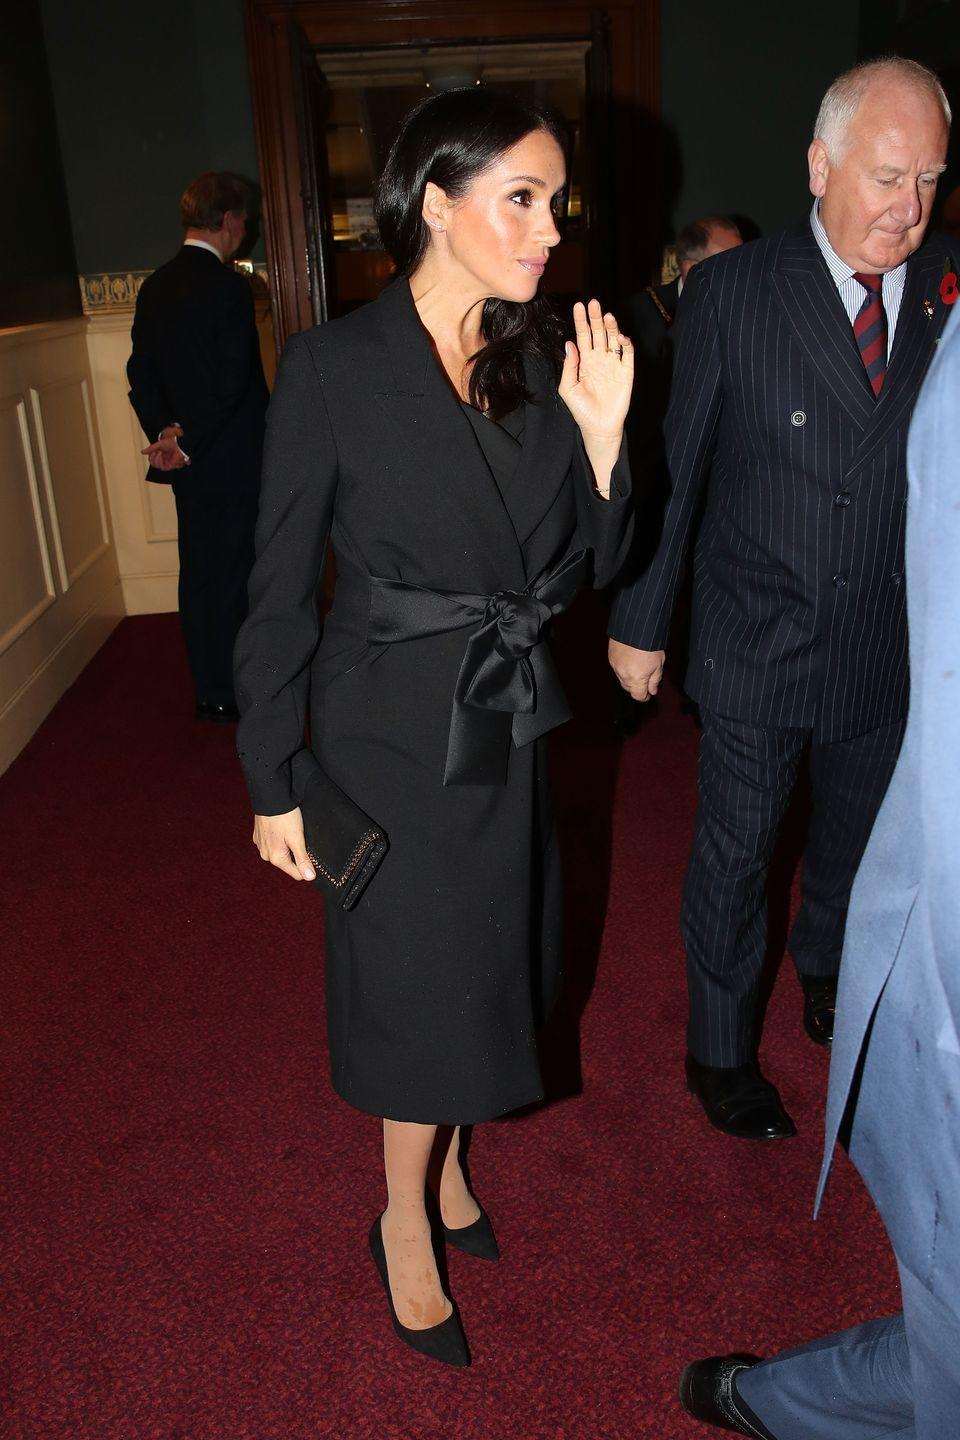 "<p>Meghan attended the Festival of Remembrance in London with Prince Harry wearing<a href=""https://www.townandcountrymag.com/style/fashion-trends/a24749566/meghan-markle-wore-black-stella-mccartney-festival-of-remembrance-photos/"" rel=""nofollow noopener"" target=""_blank"" data-ylk=""slk:a black Stella McCartney coat"" class=""link rapid-noclick-resp""> a black Stella McCartney coat</a> for the somber occasion. The Duchess accessorized with black heels, a small black clutch, and a poppy pin.</p>"